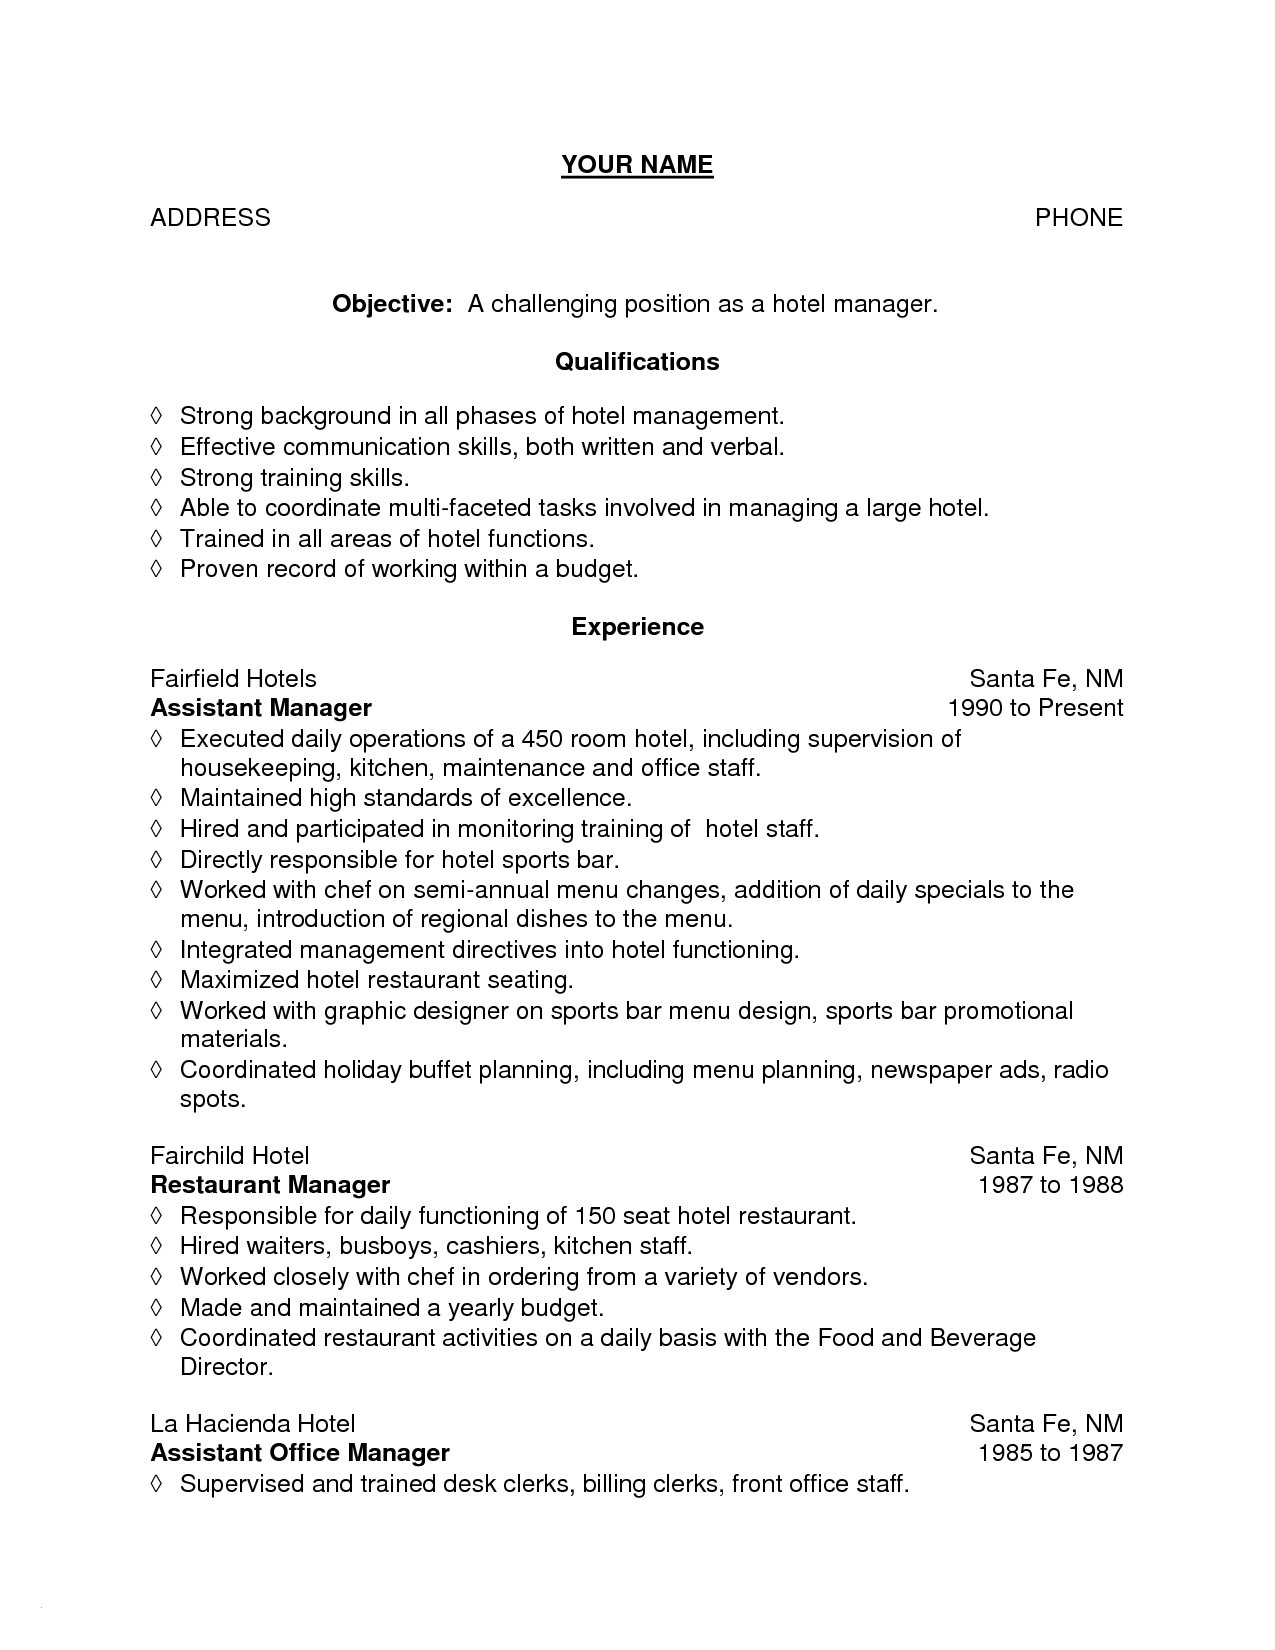 Restaurants Manager Resume - Restaurant Managers Resume Inspirational Fresh Grapher Resume Sample